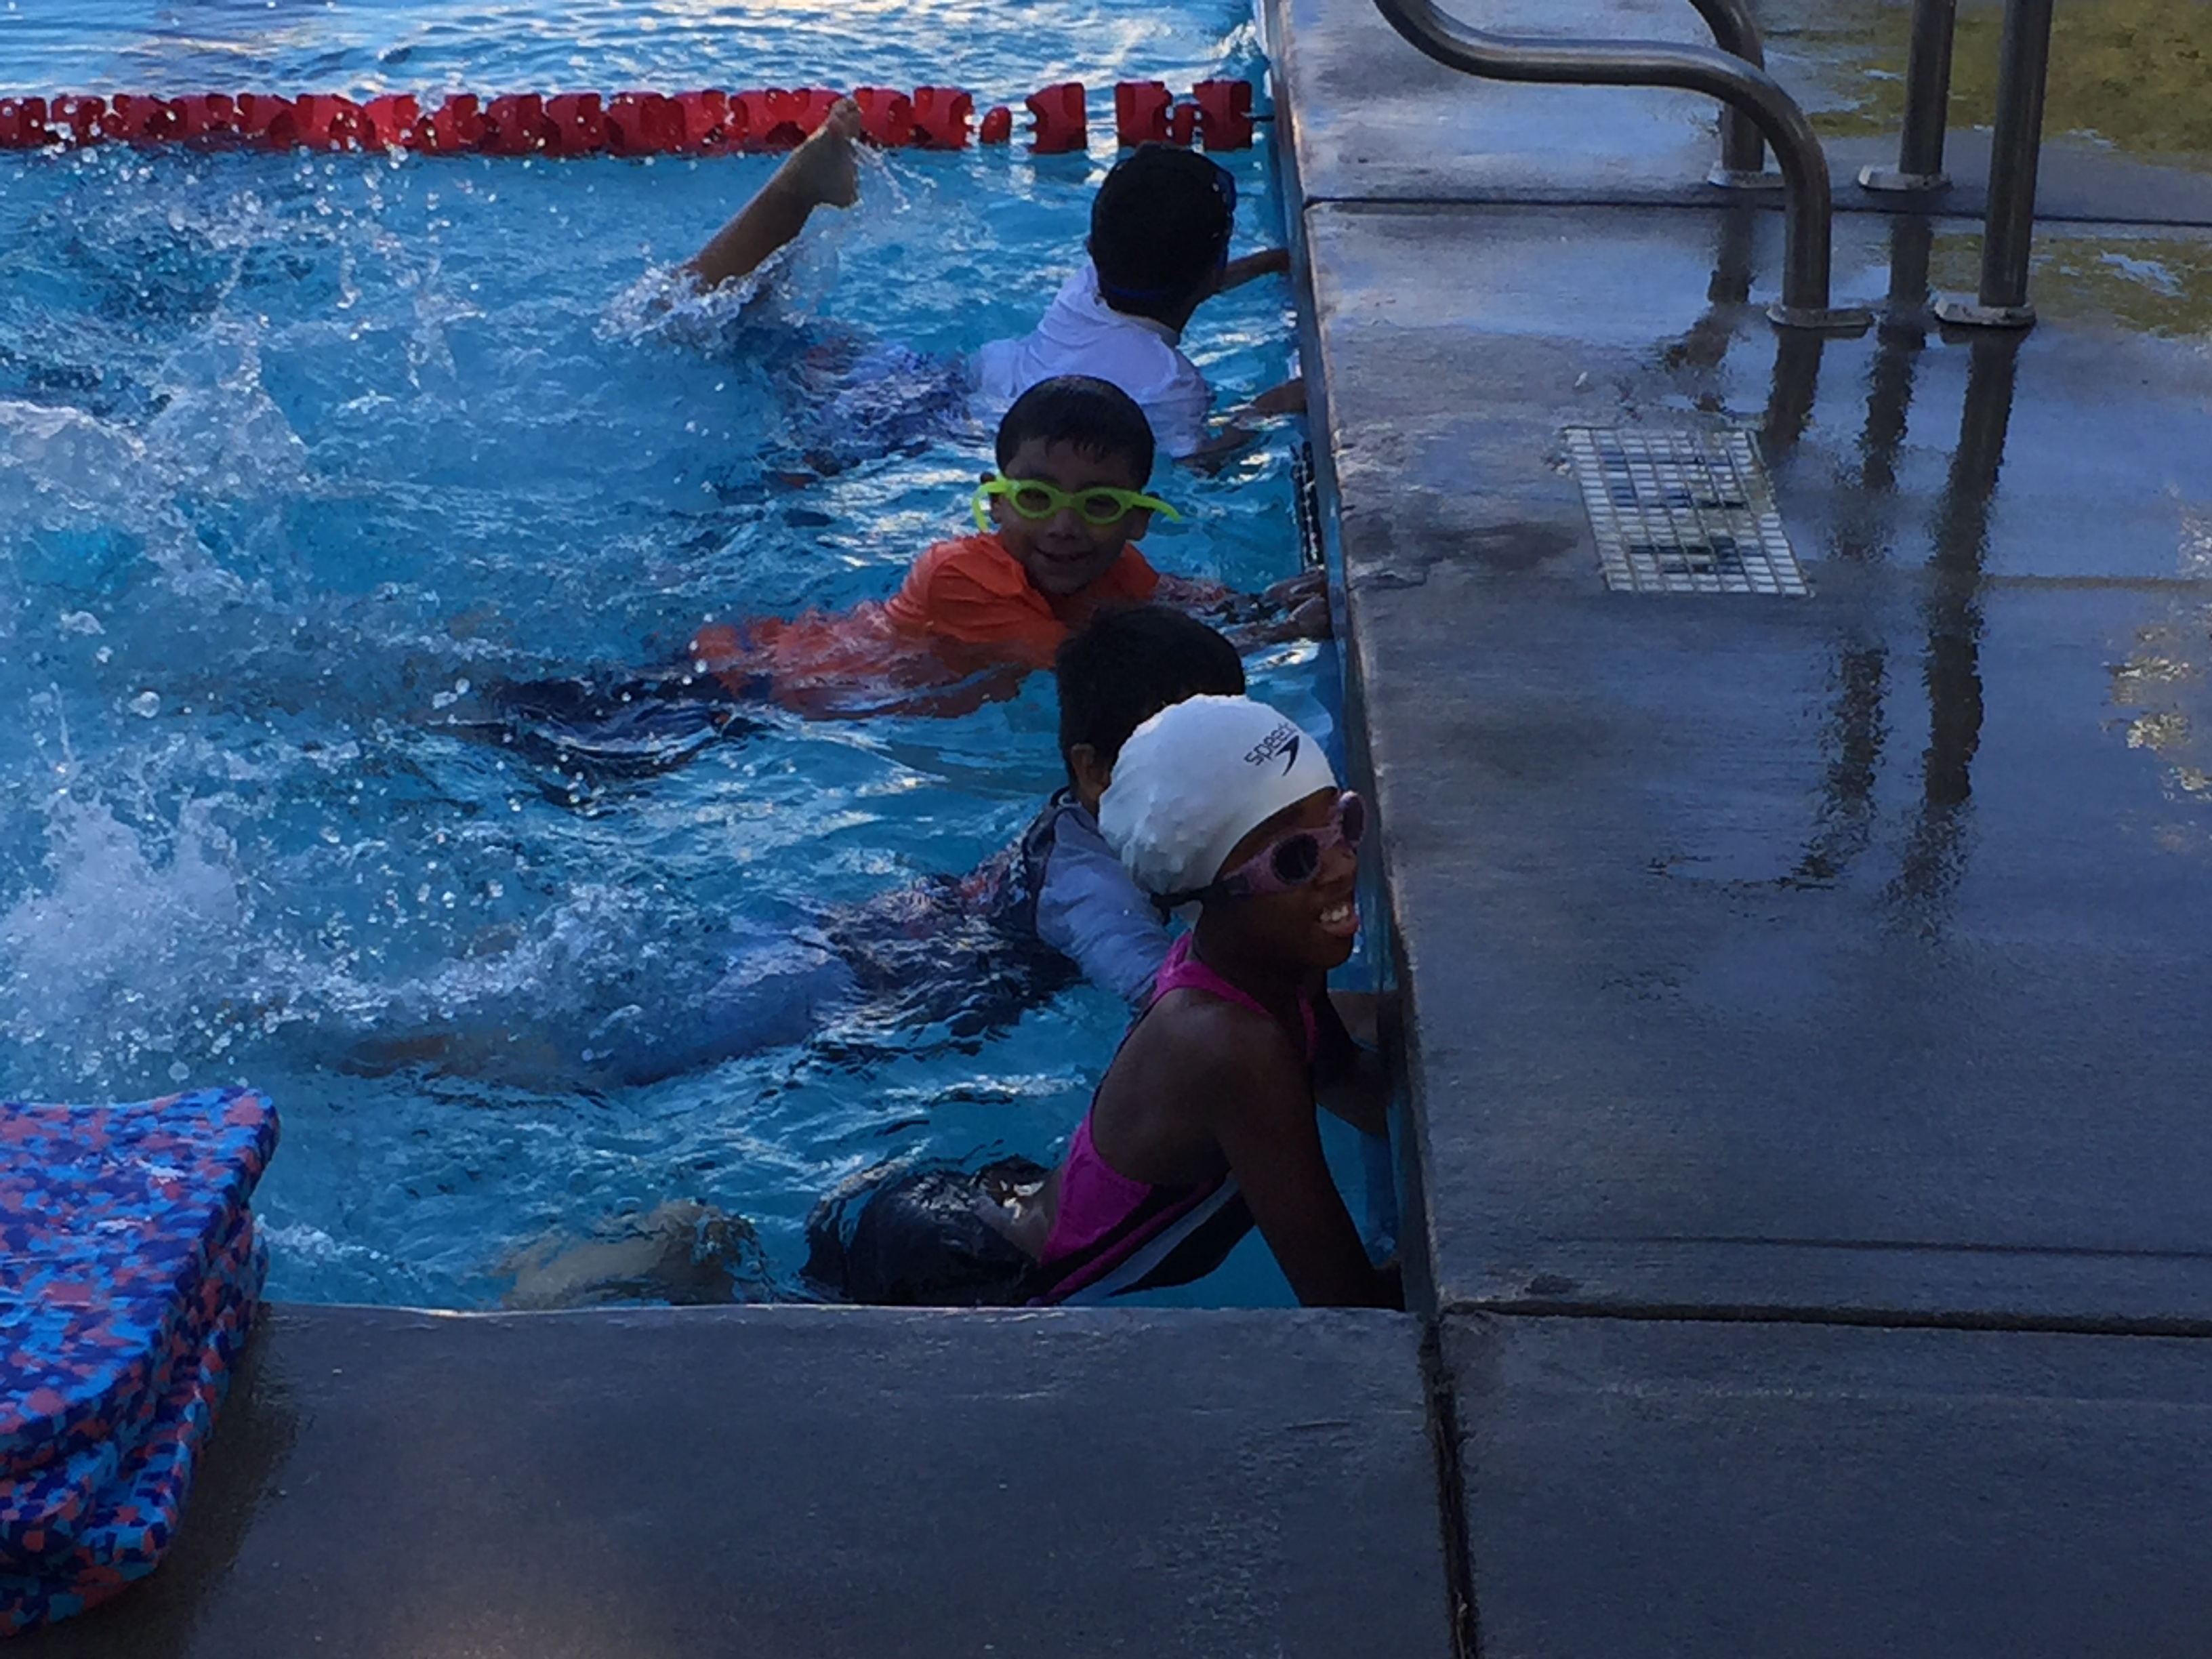 Autism Speaks Helping Kids Learn to Swim with Grants - YouTube